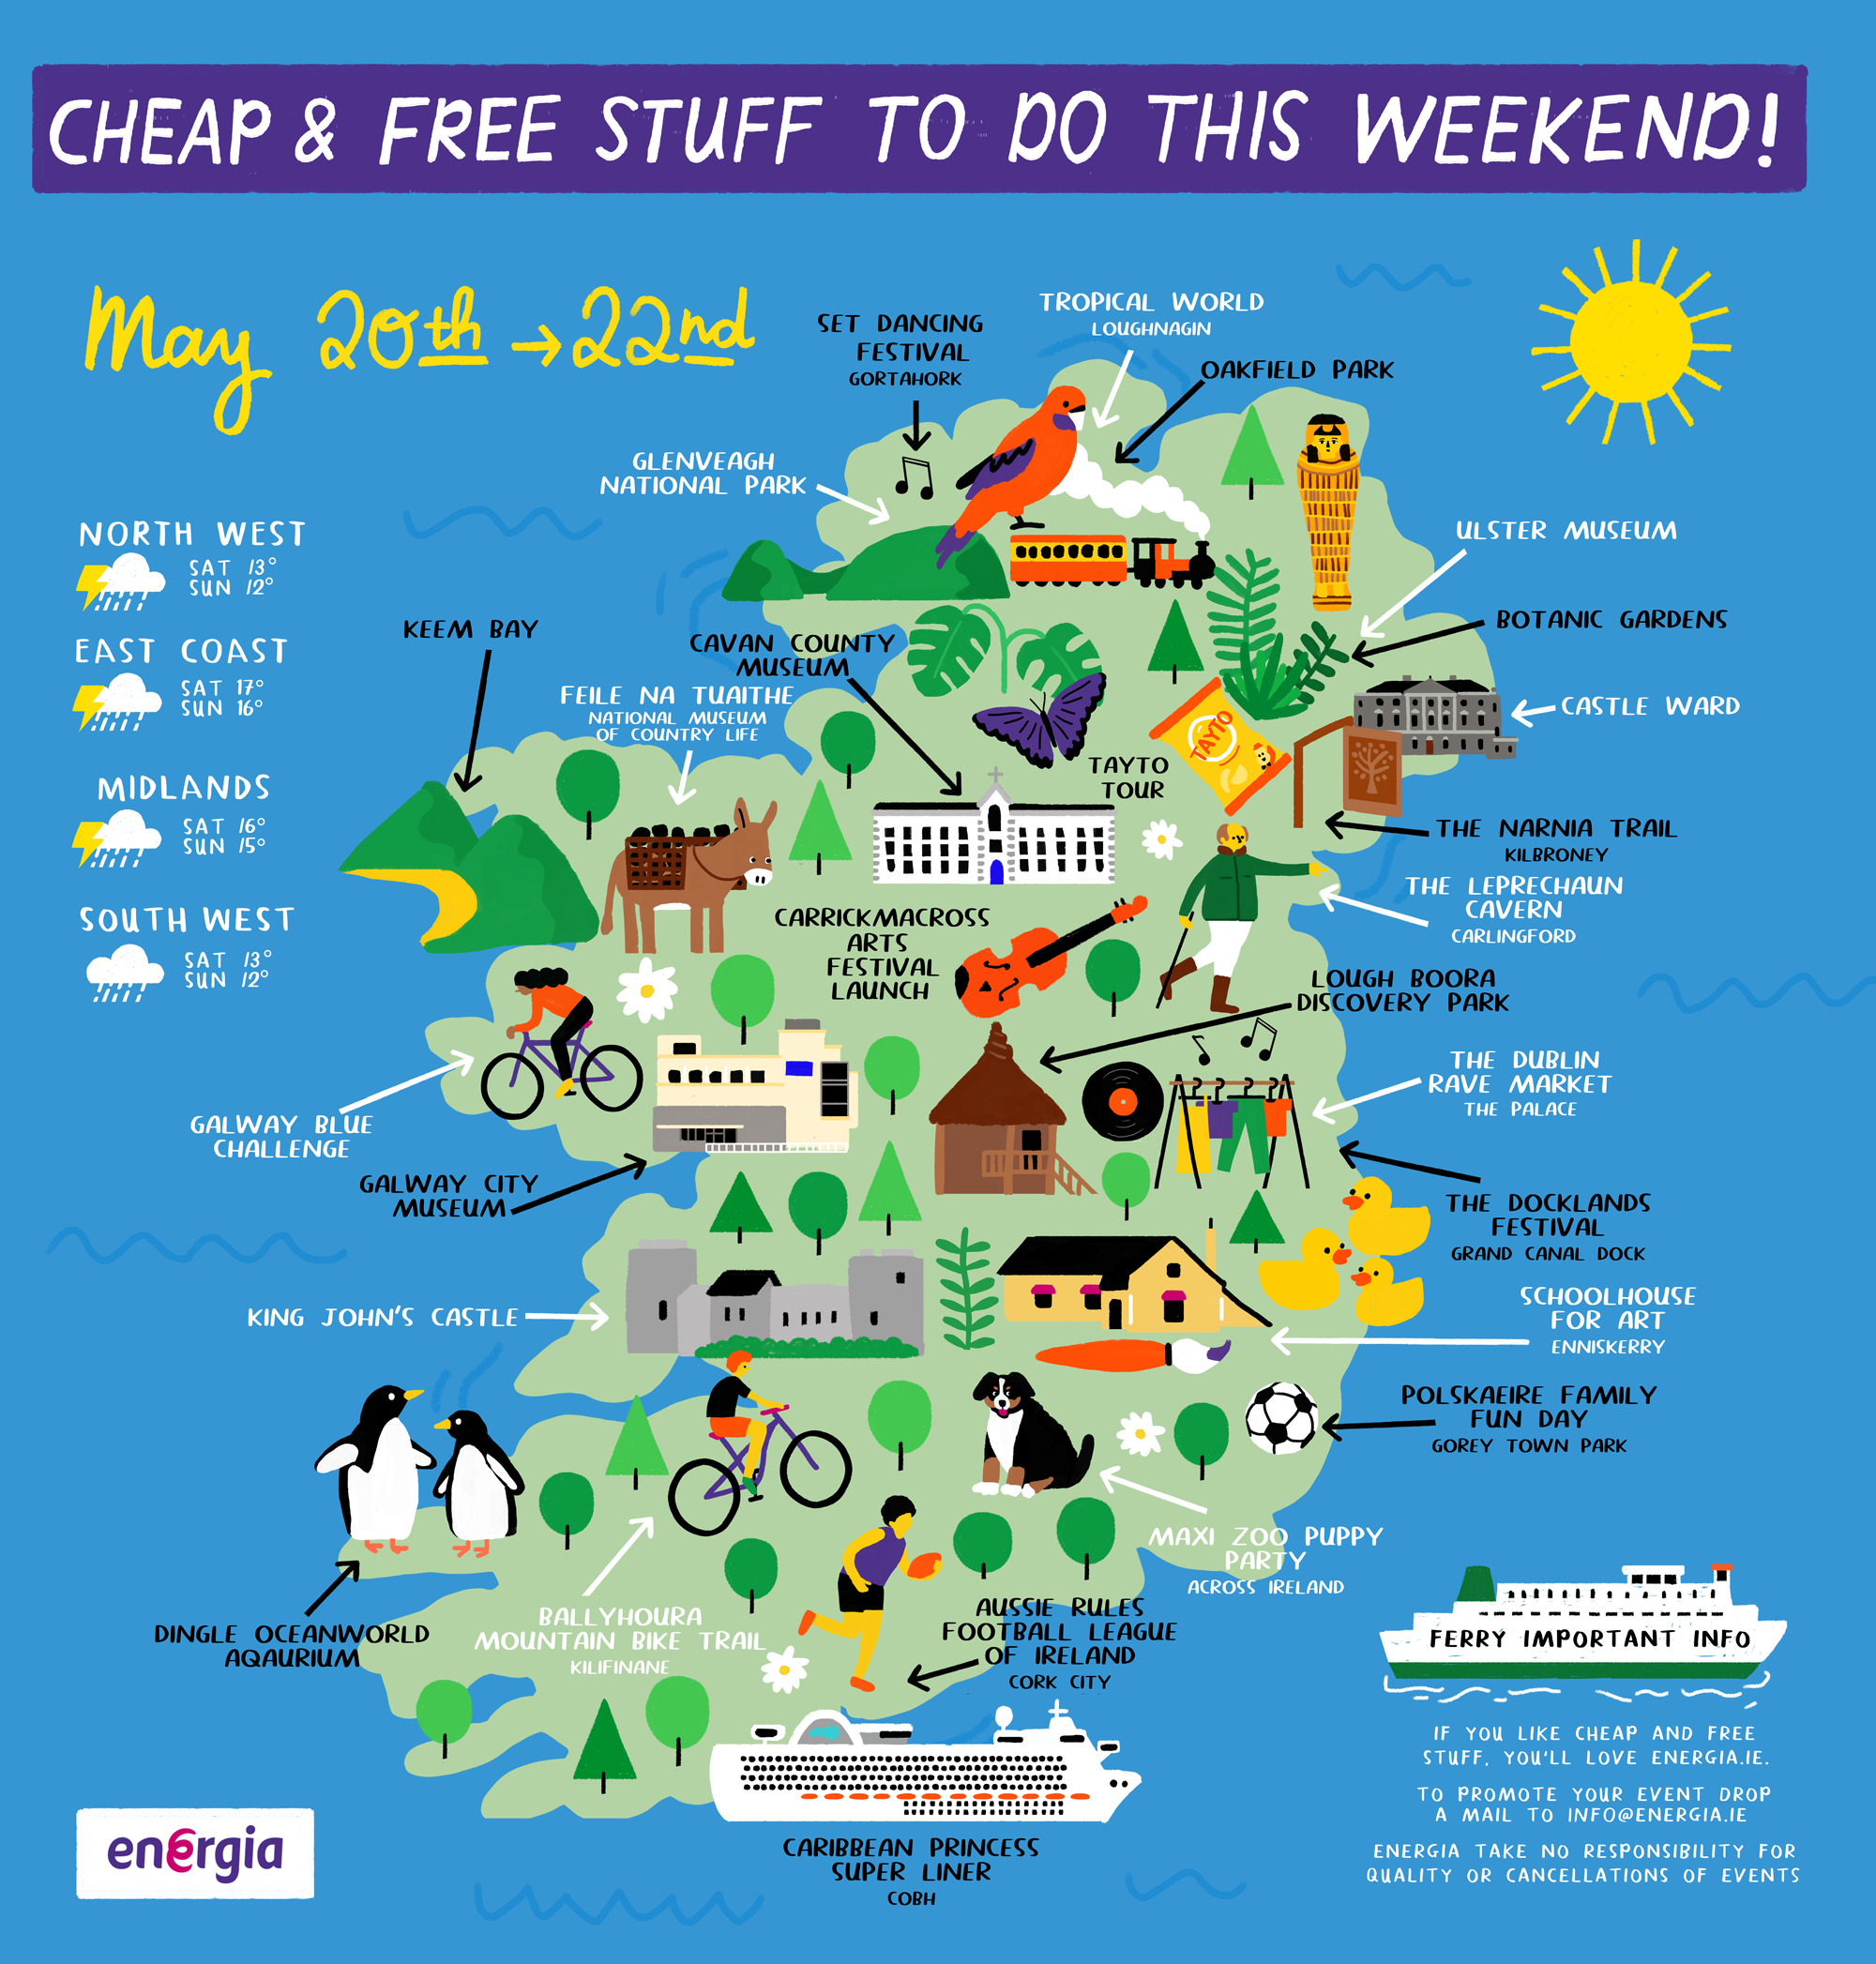 Cheap & Free stuff to do this weekend 20th - 22nd May